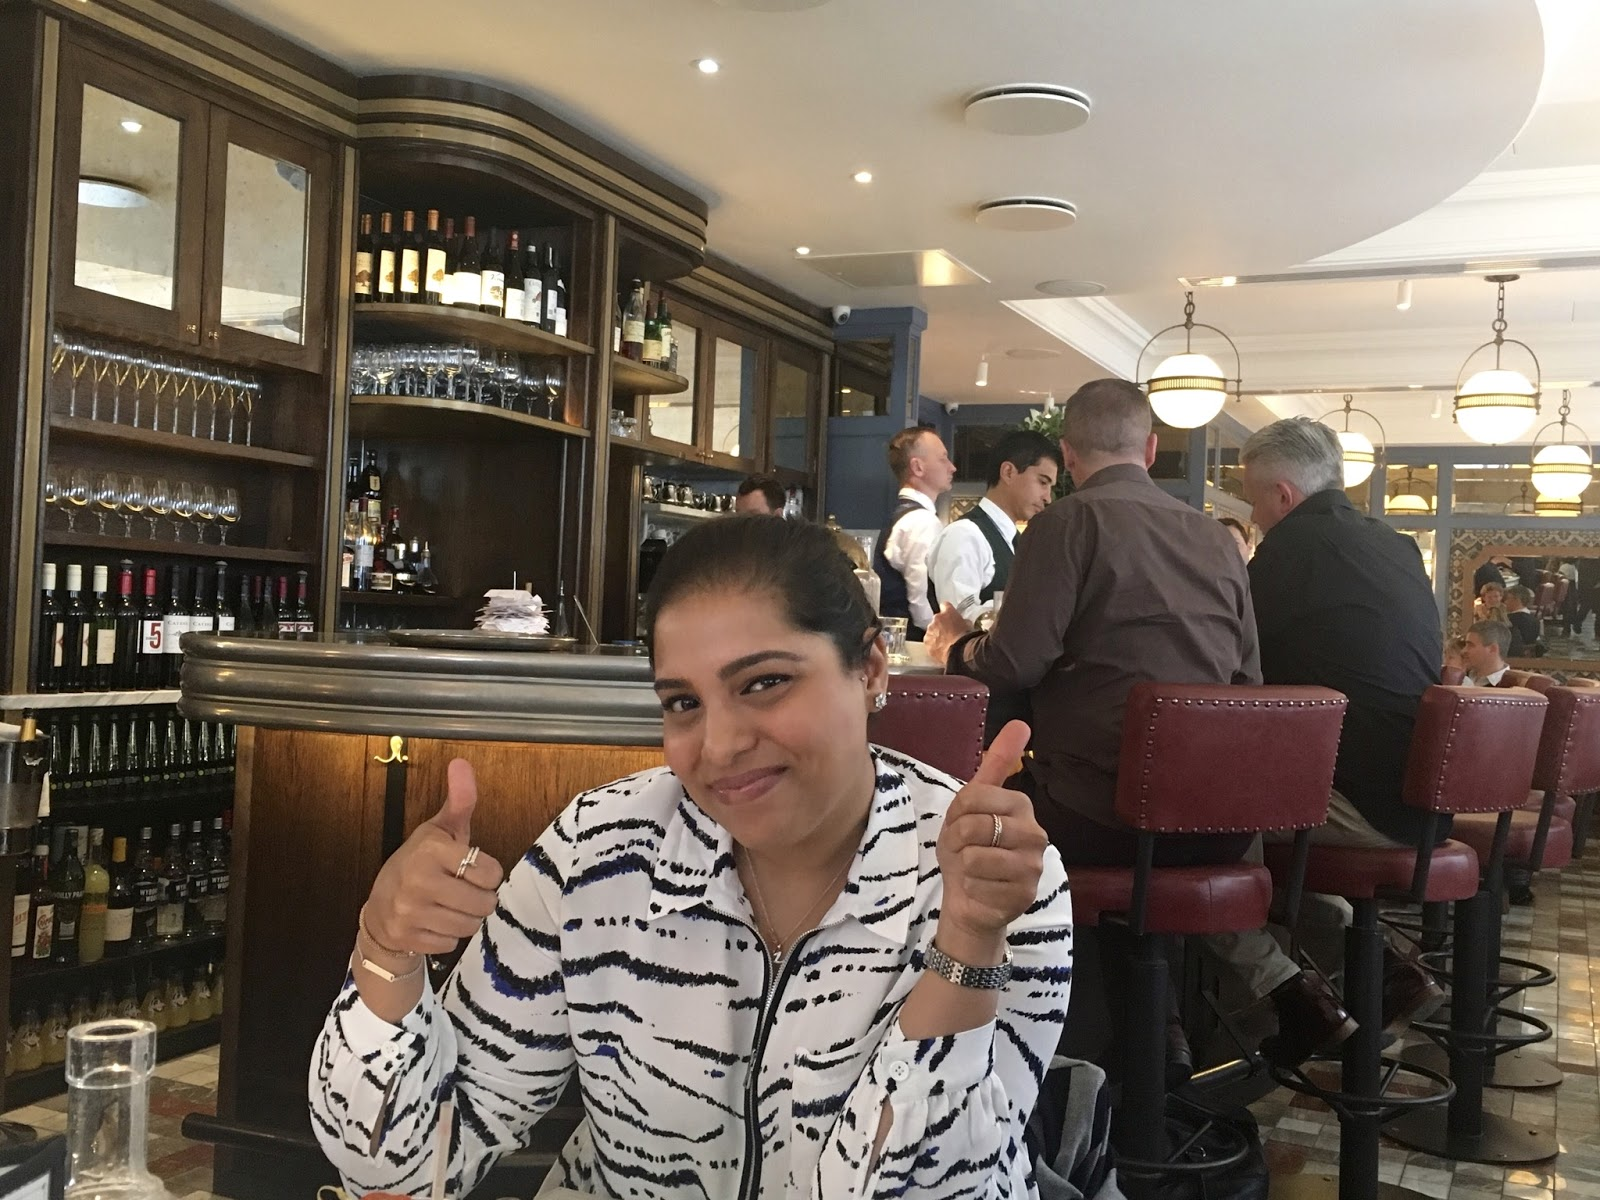 Lunch In The Ivy Cafe Marylebone Taking The Nicki